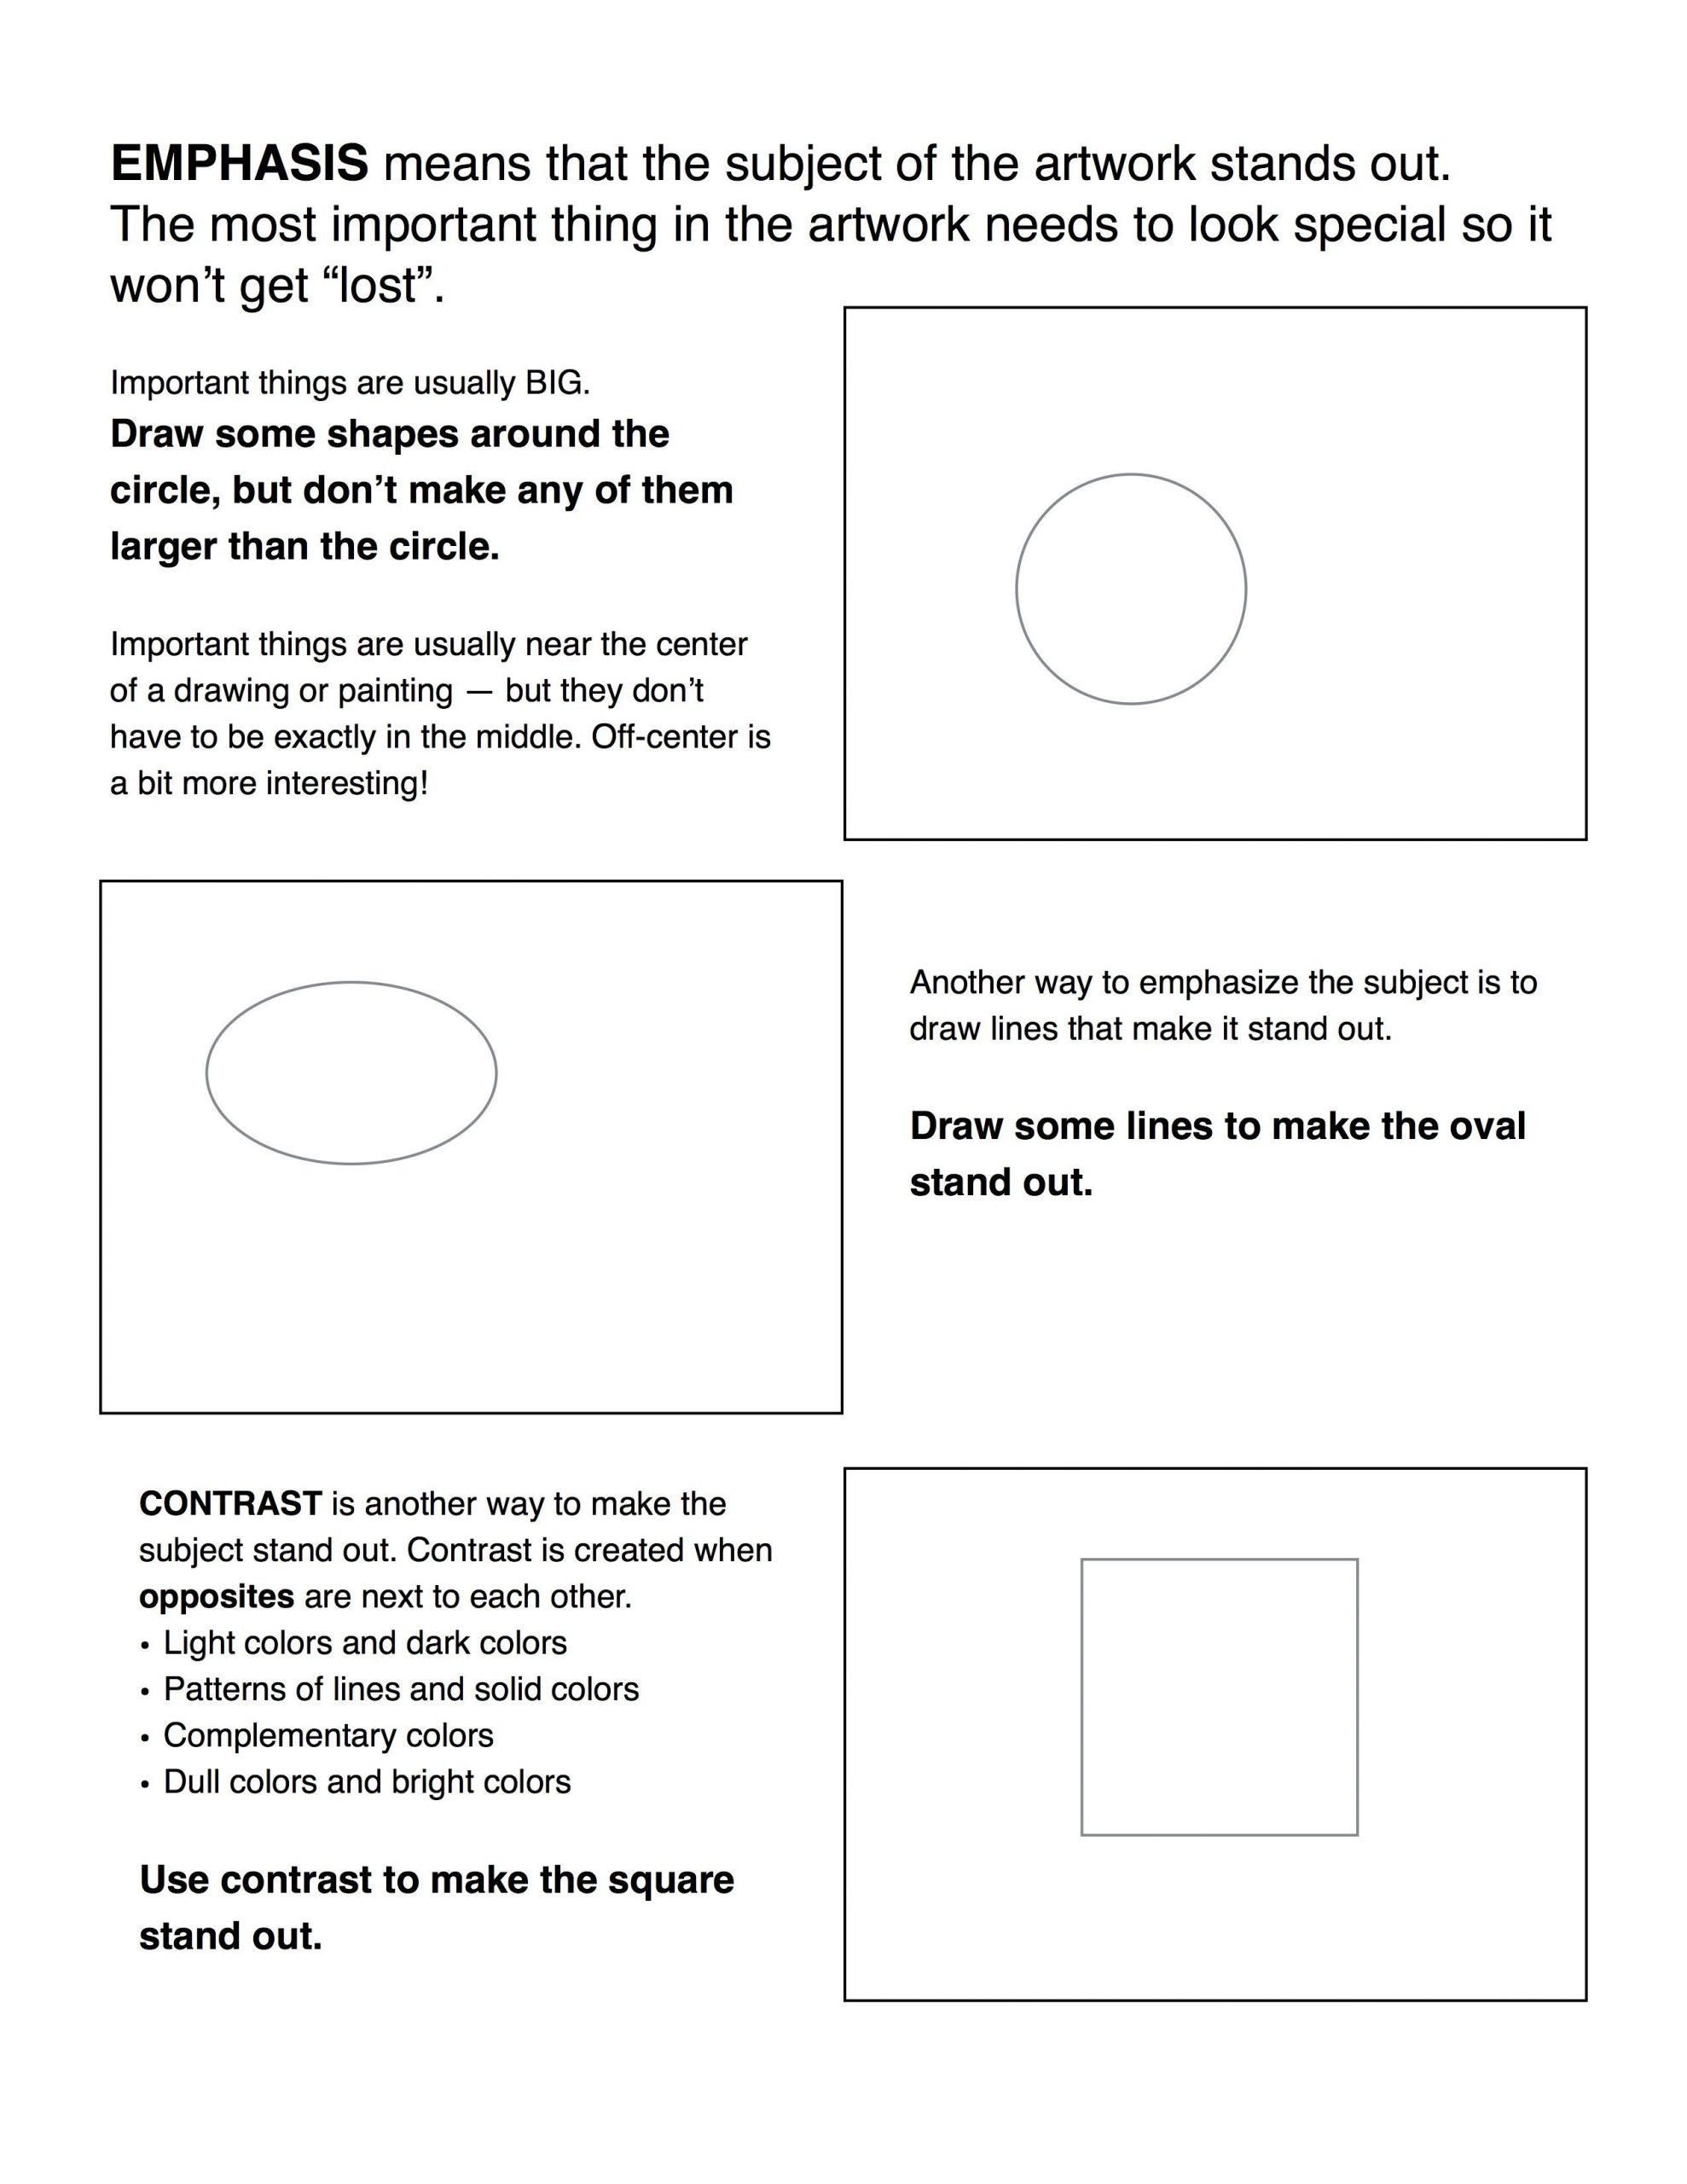 Middle School Art Worksheets Emphasis Contrast Worksheet